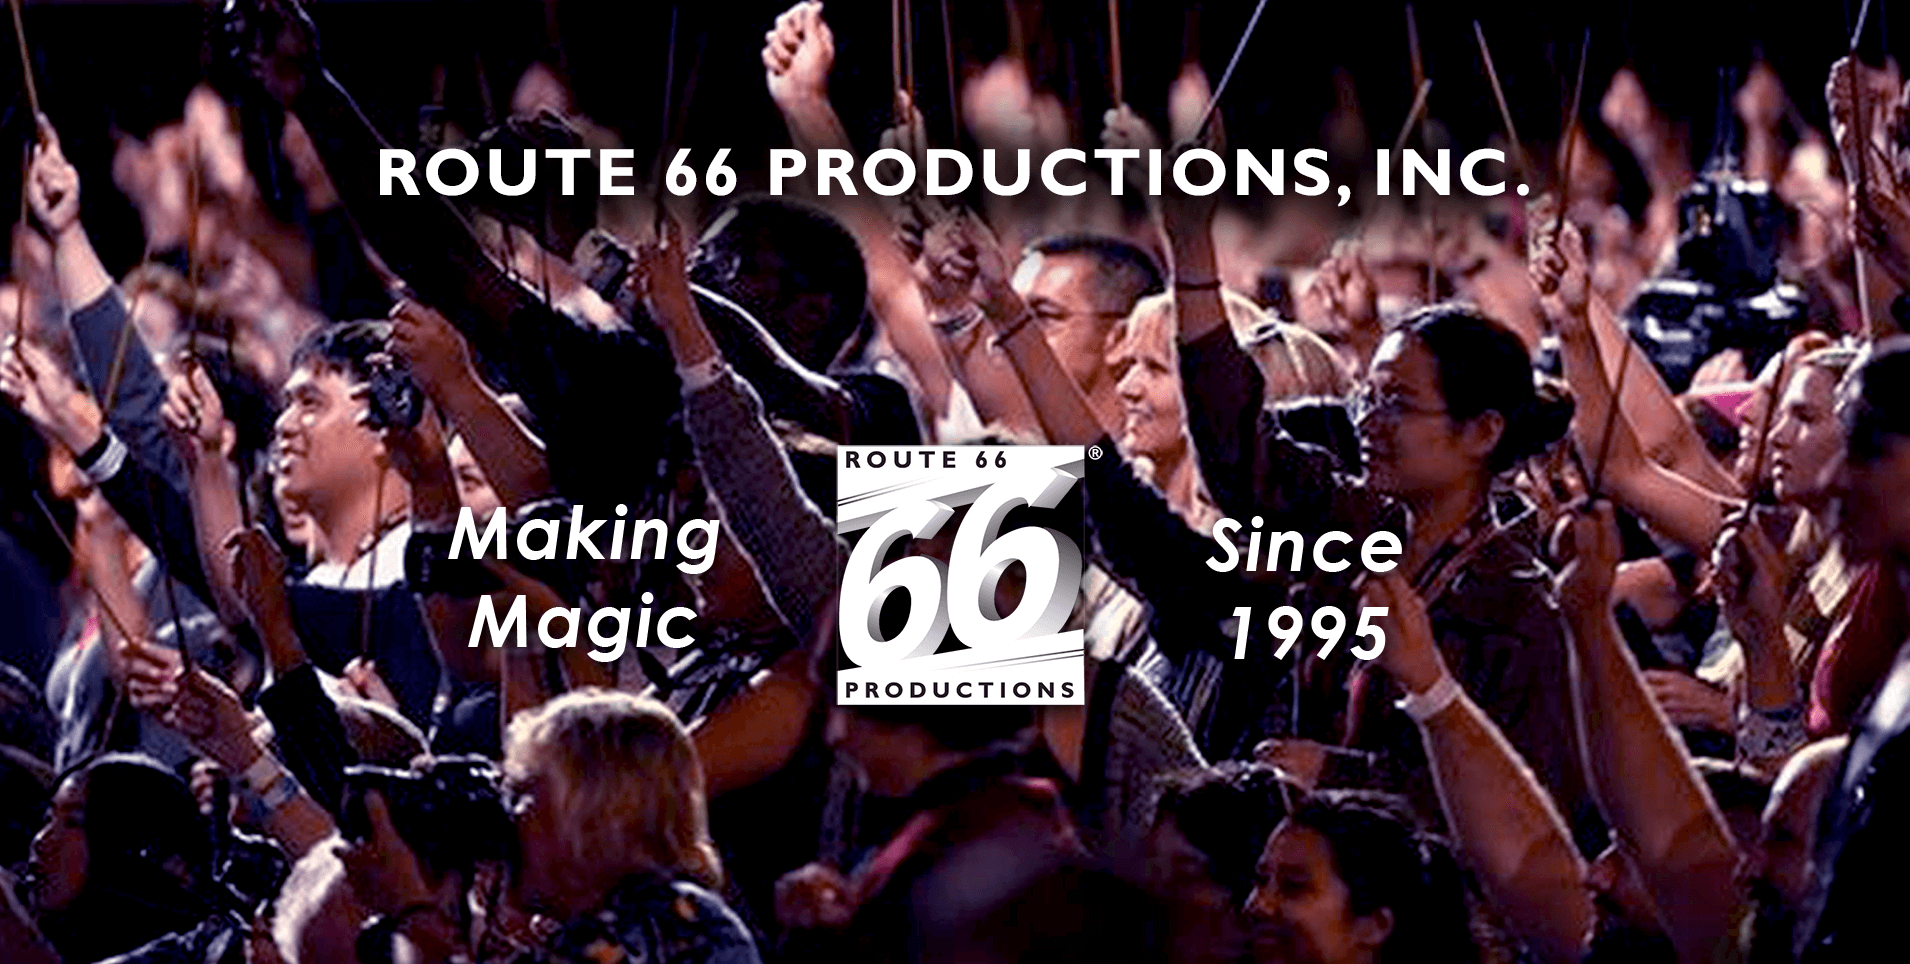 Route 66 Productions: Making Magic Since 1995